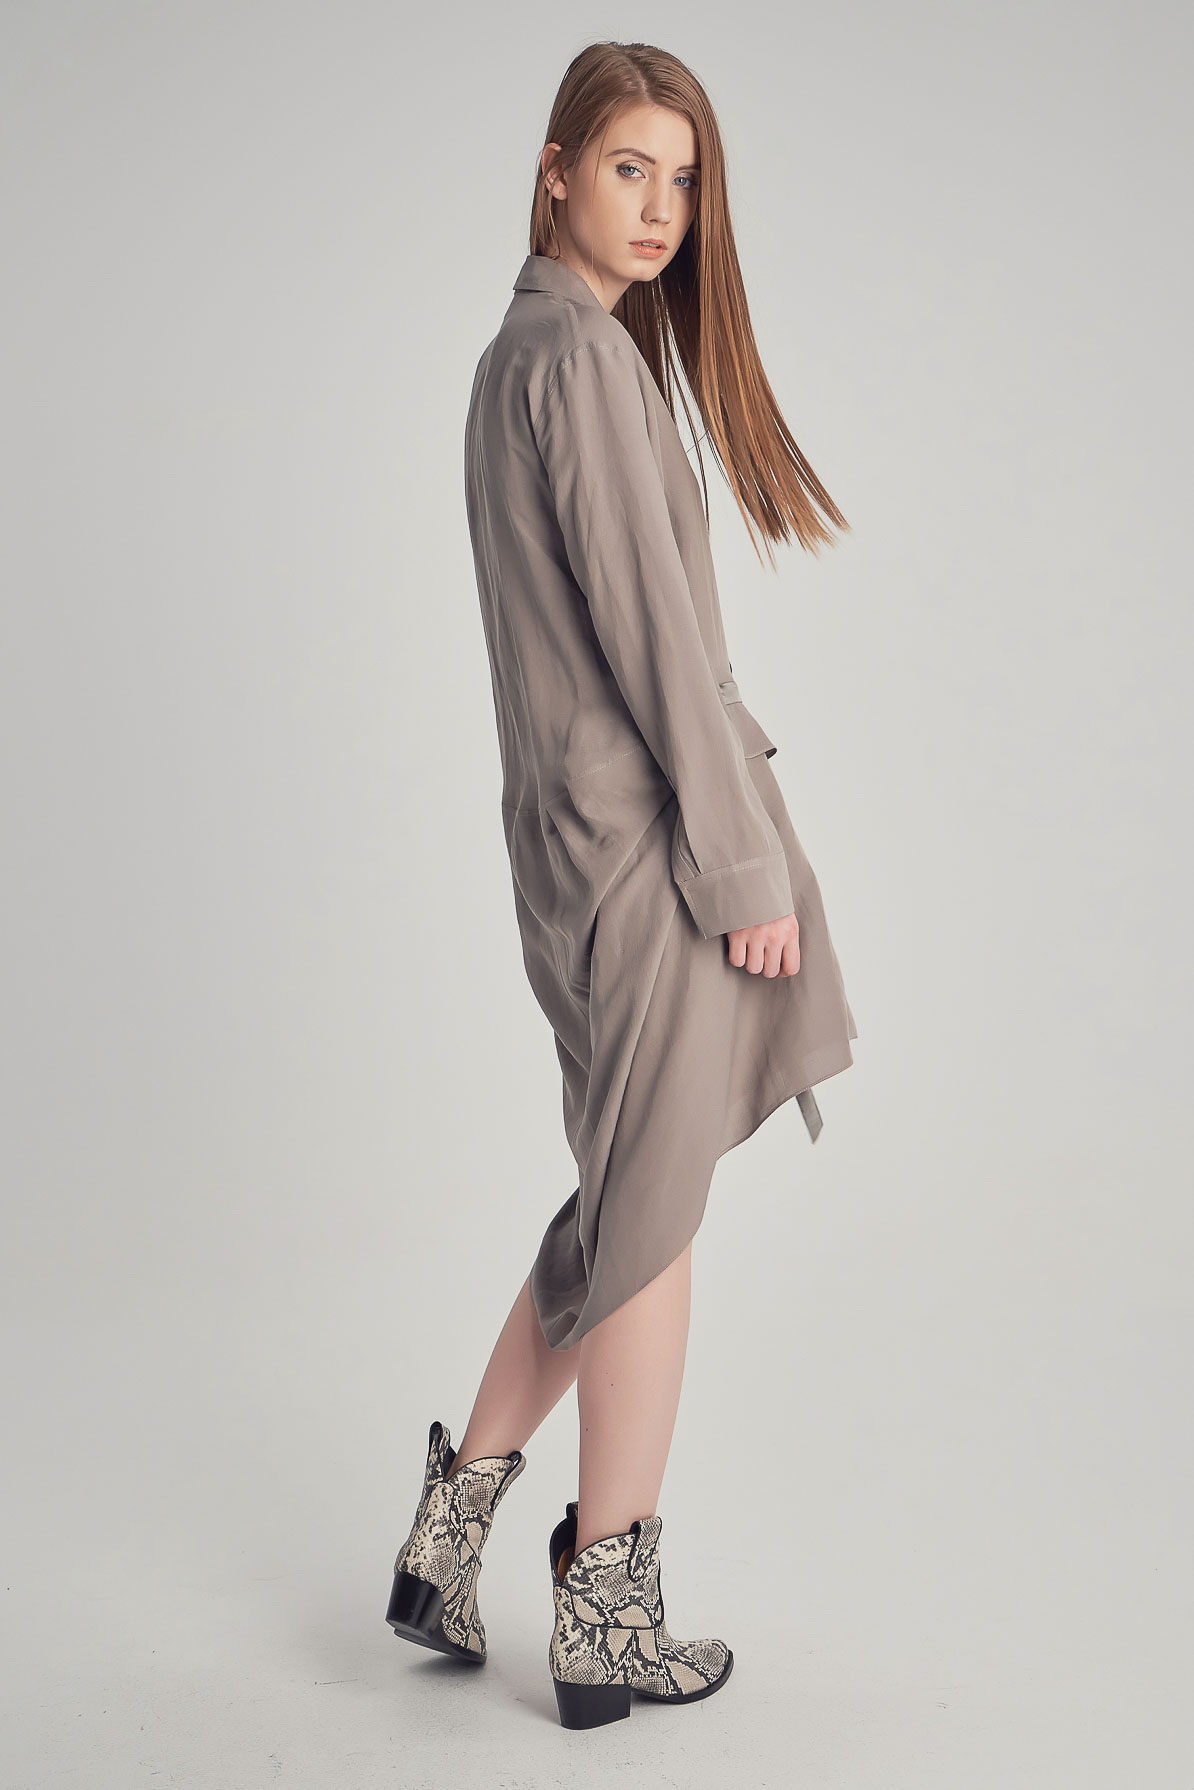 Grey Carlie Dress